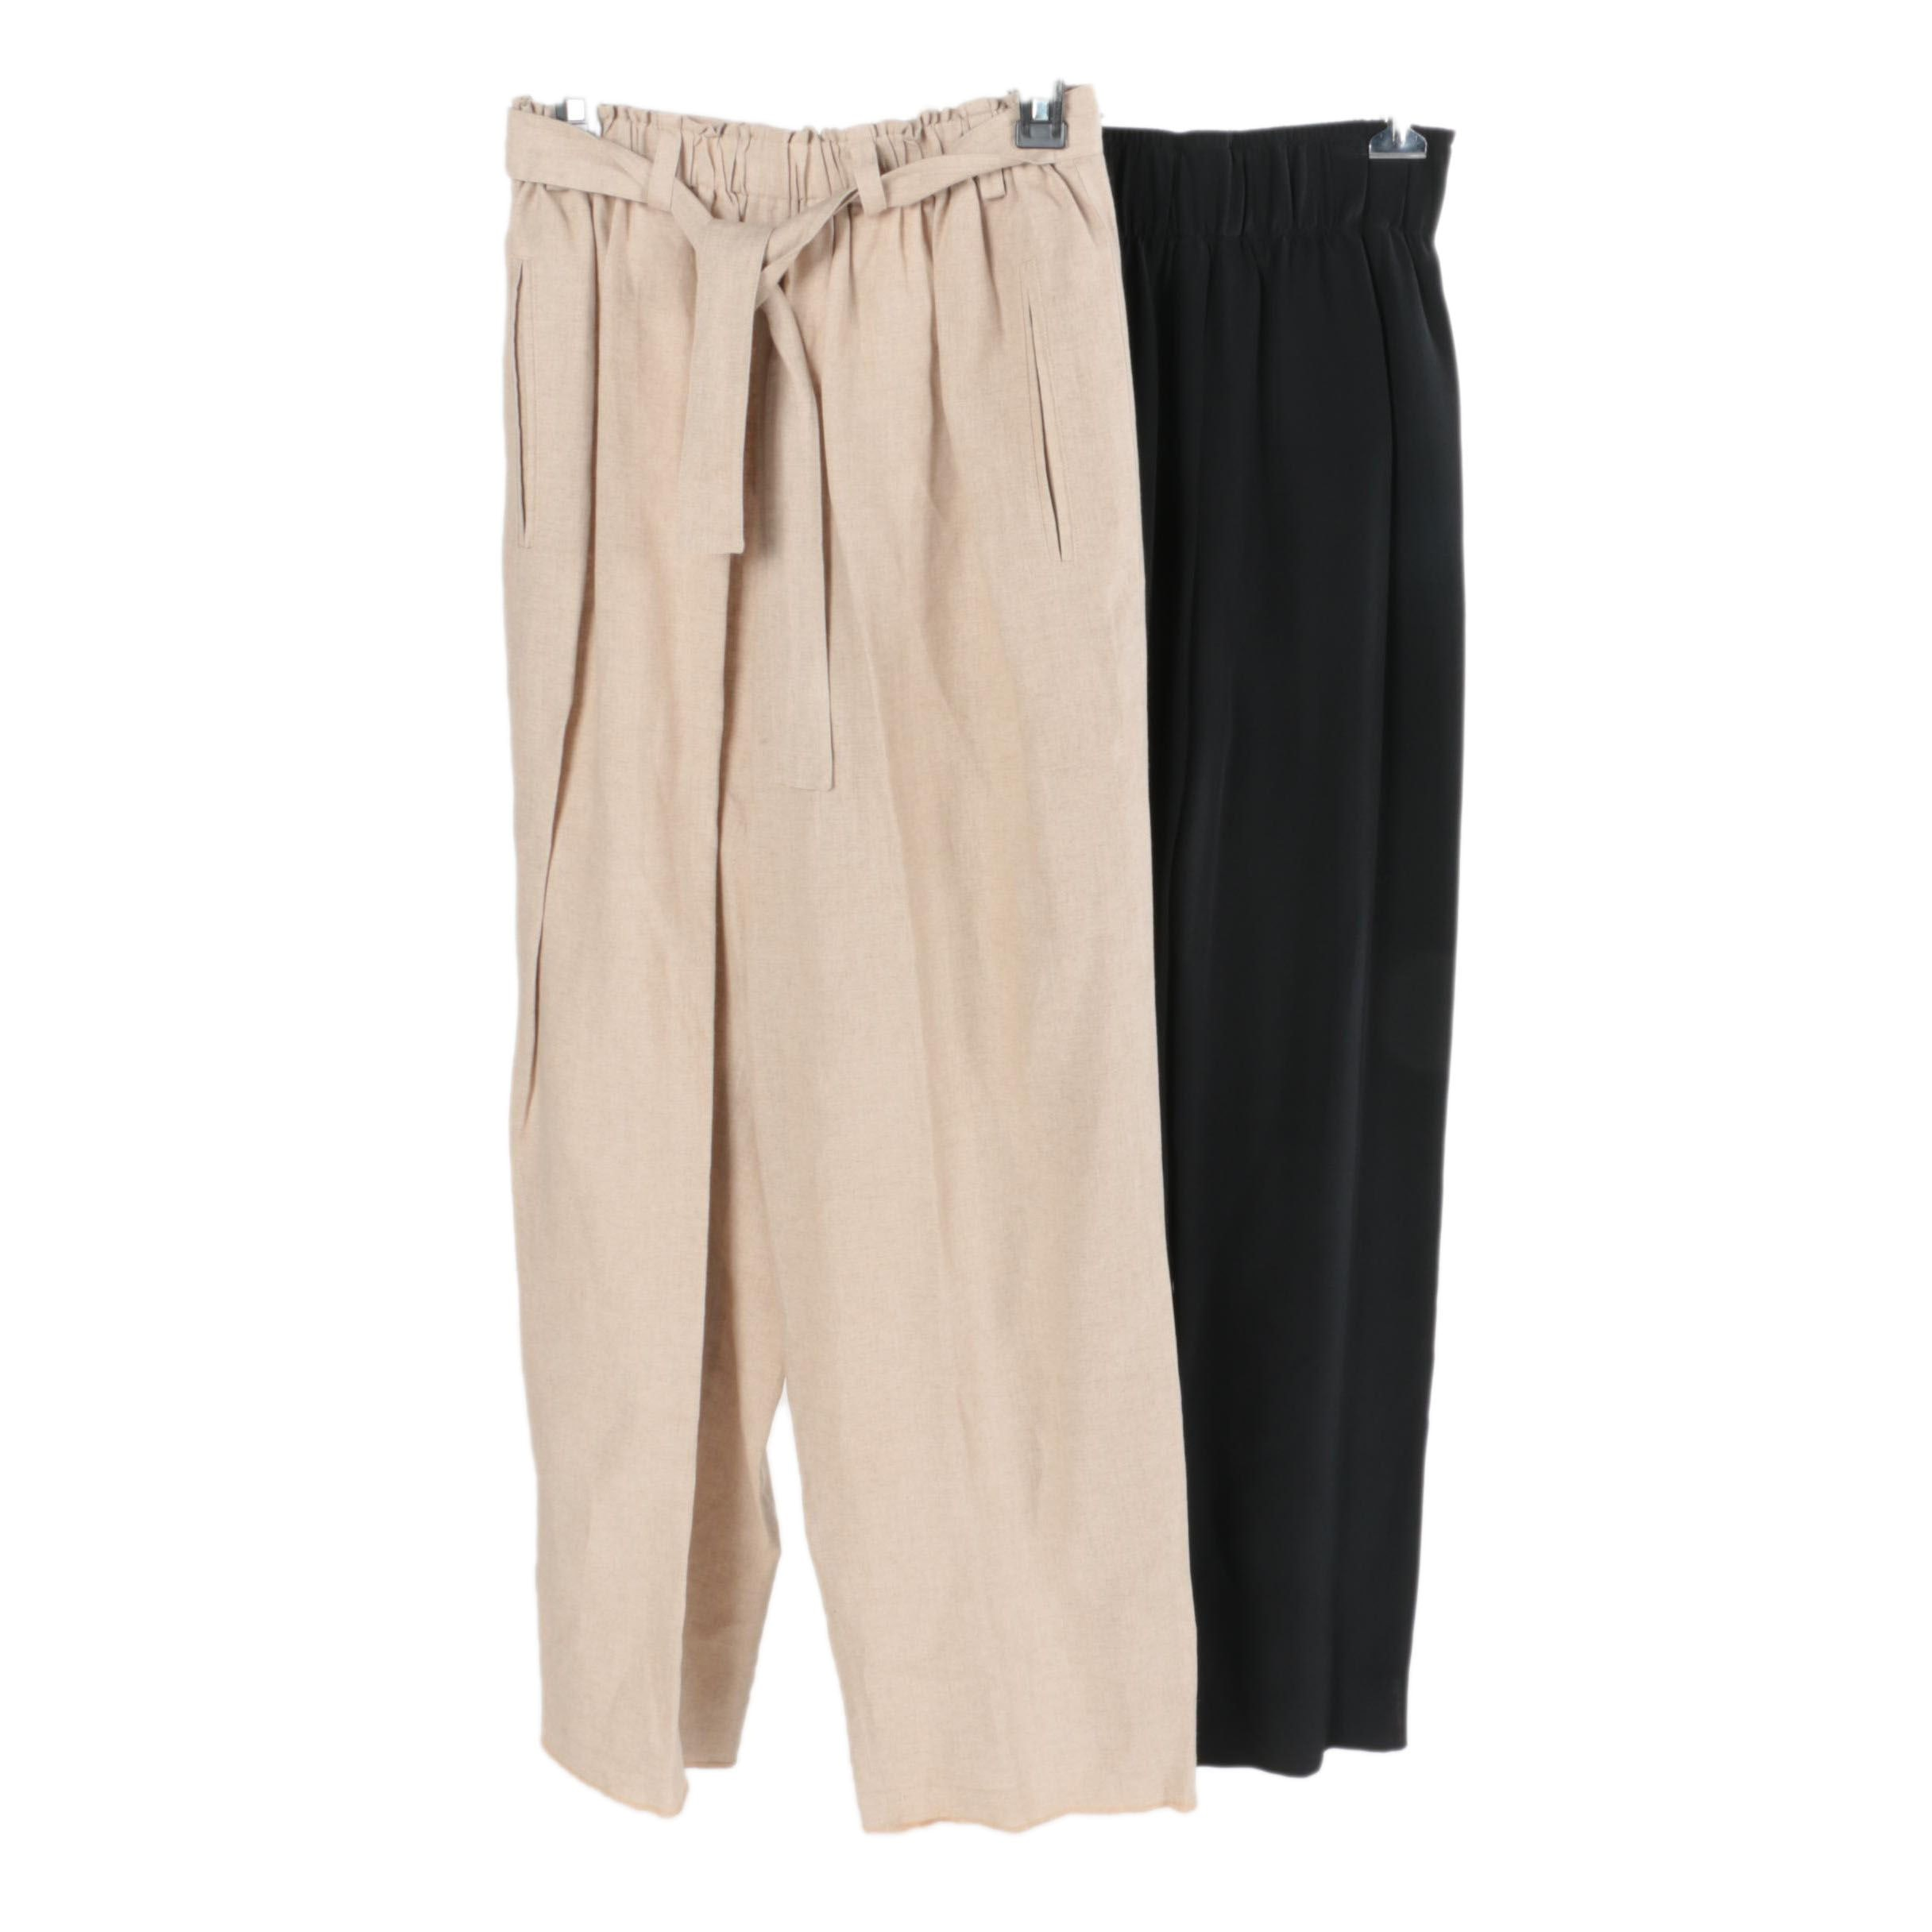 Women's Causal Pants Including Jennifer George